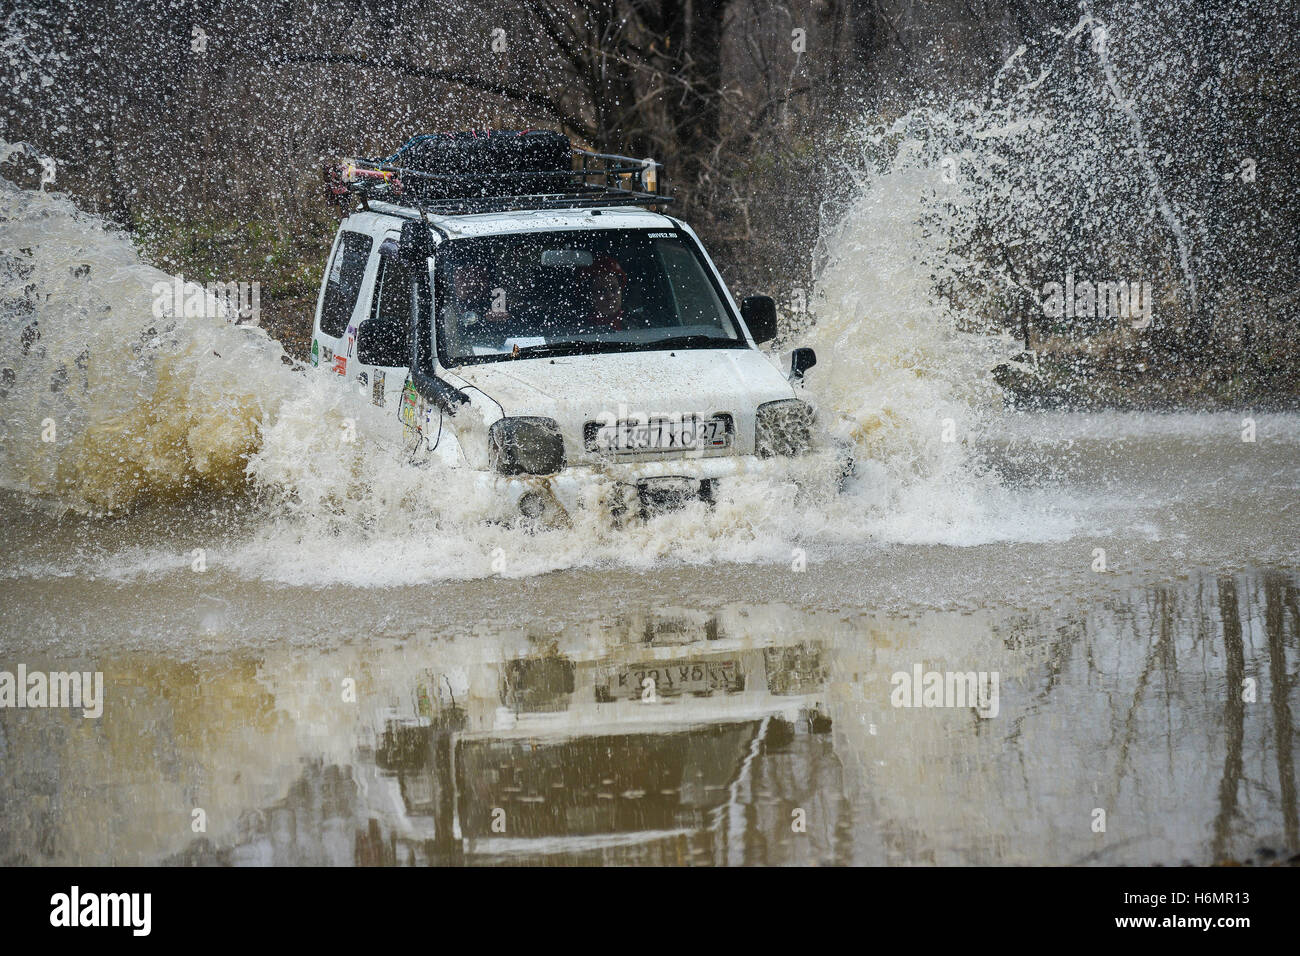 the car is driven on the offroad - Stock Image